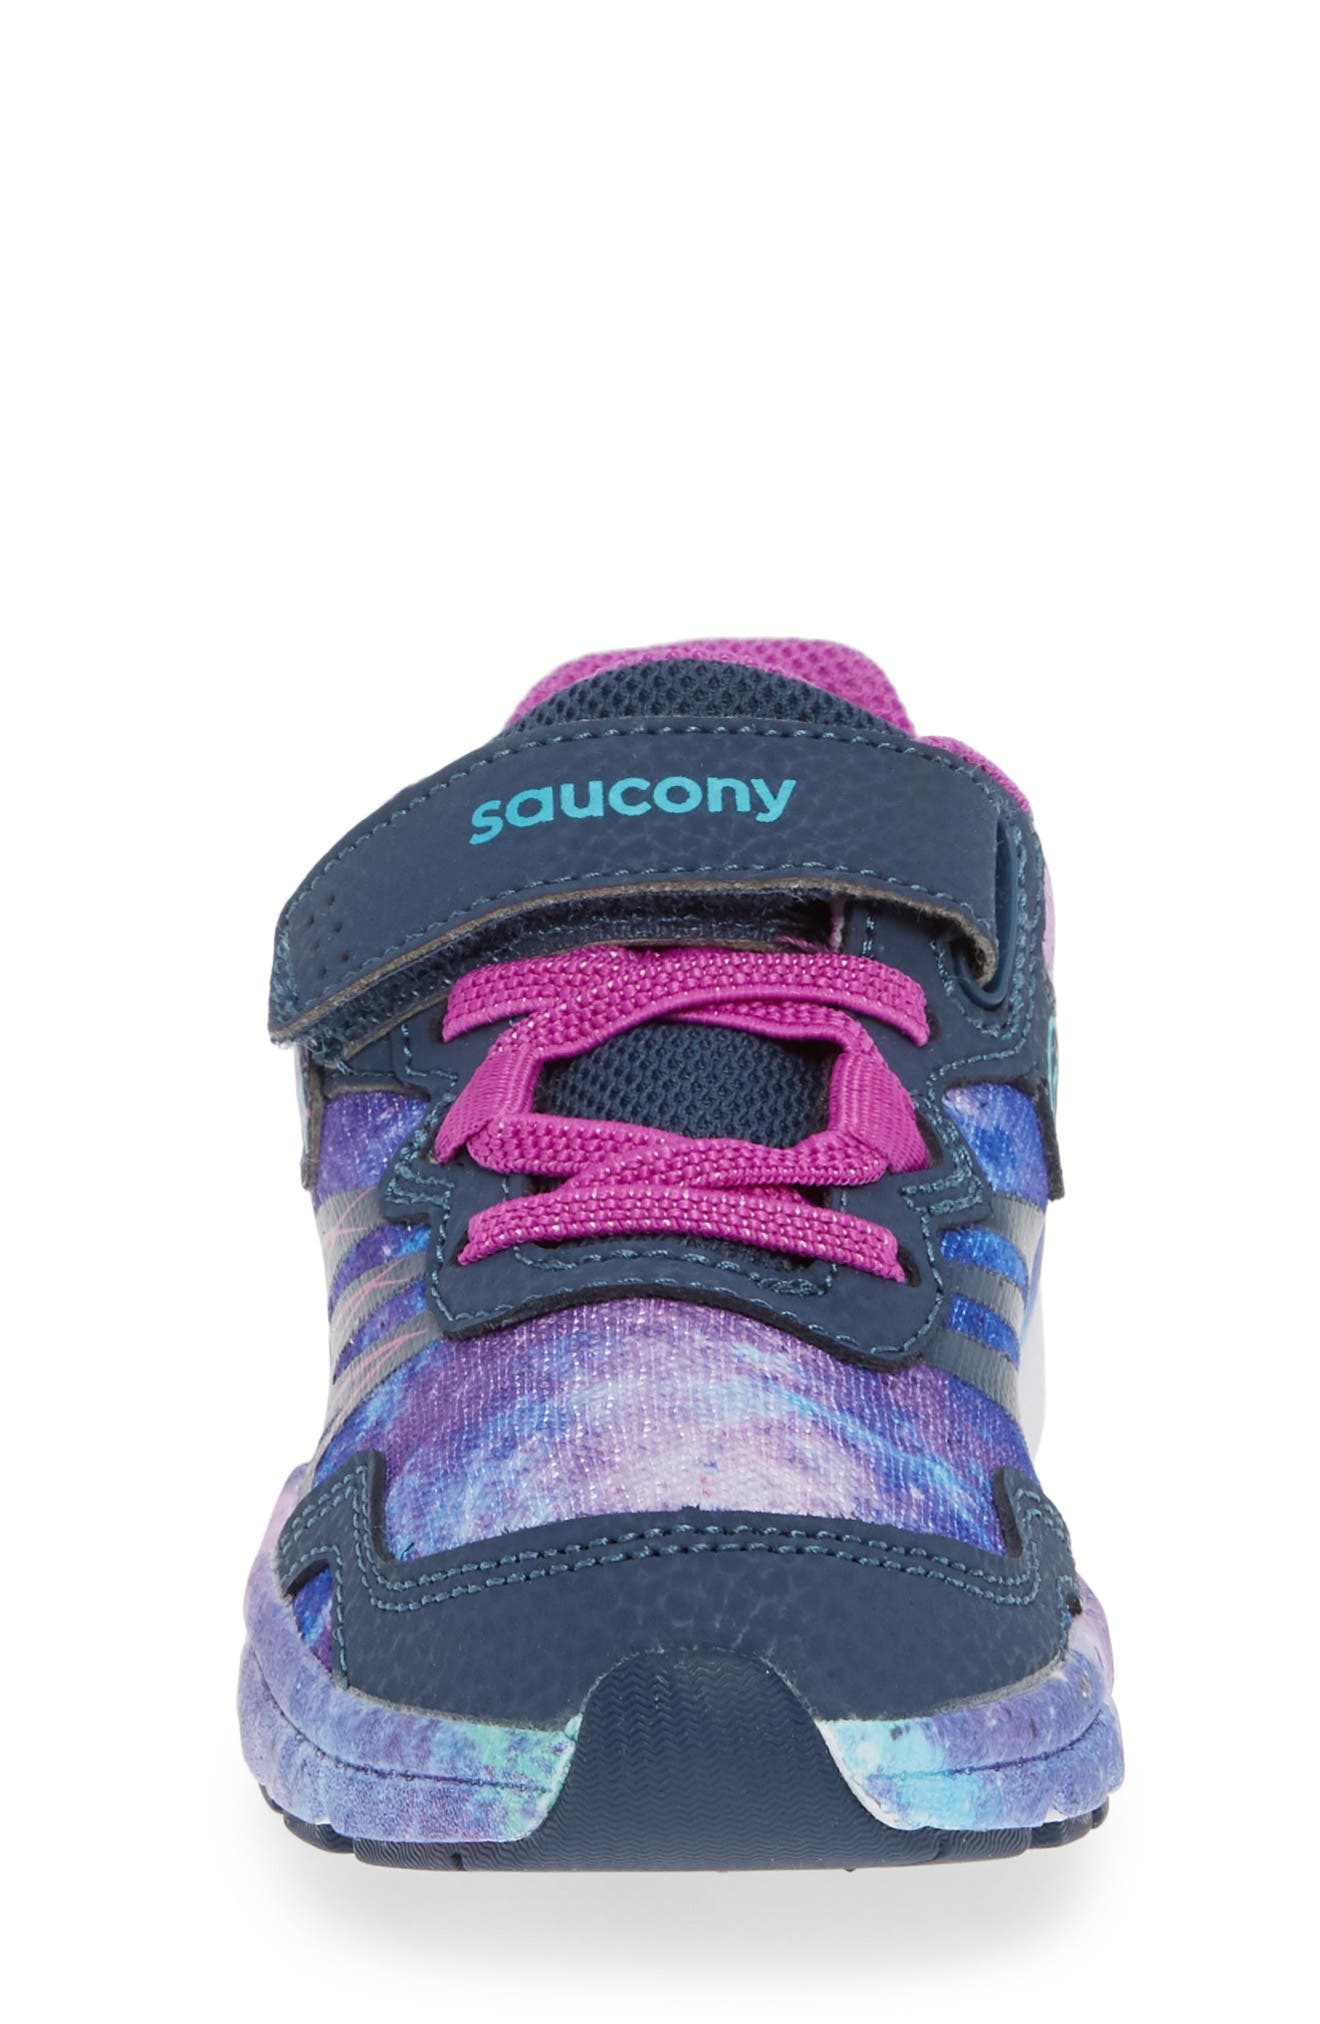 SAUCONY, Kotaro Flash Sneaker, Alternate thumbnail 4, color, PURPLE LEATHER/ MESH